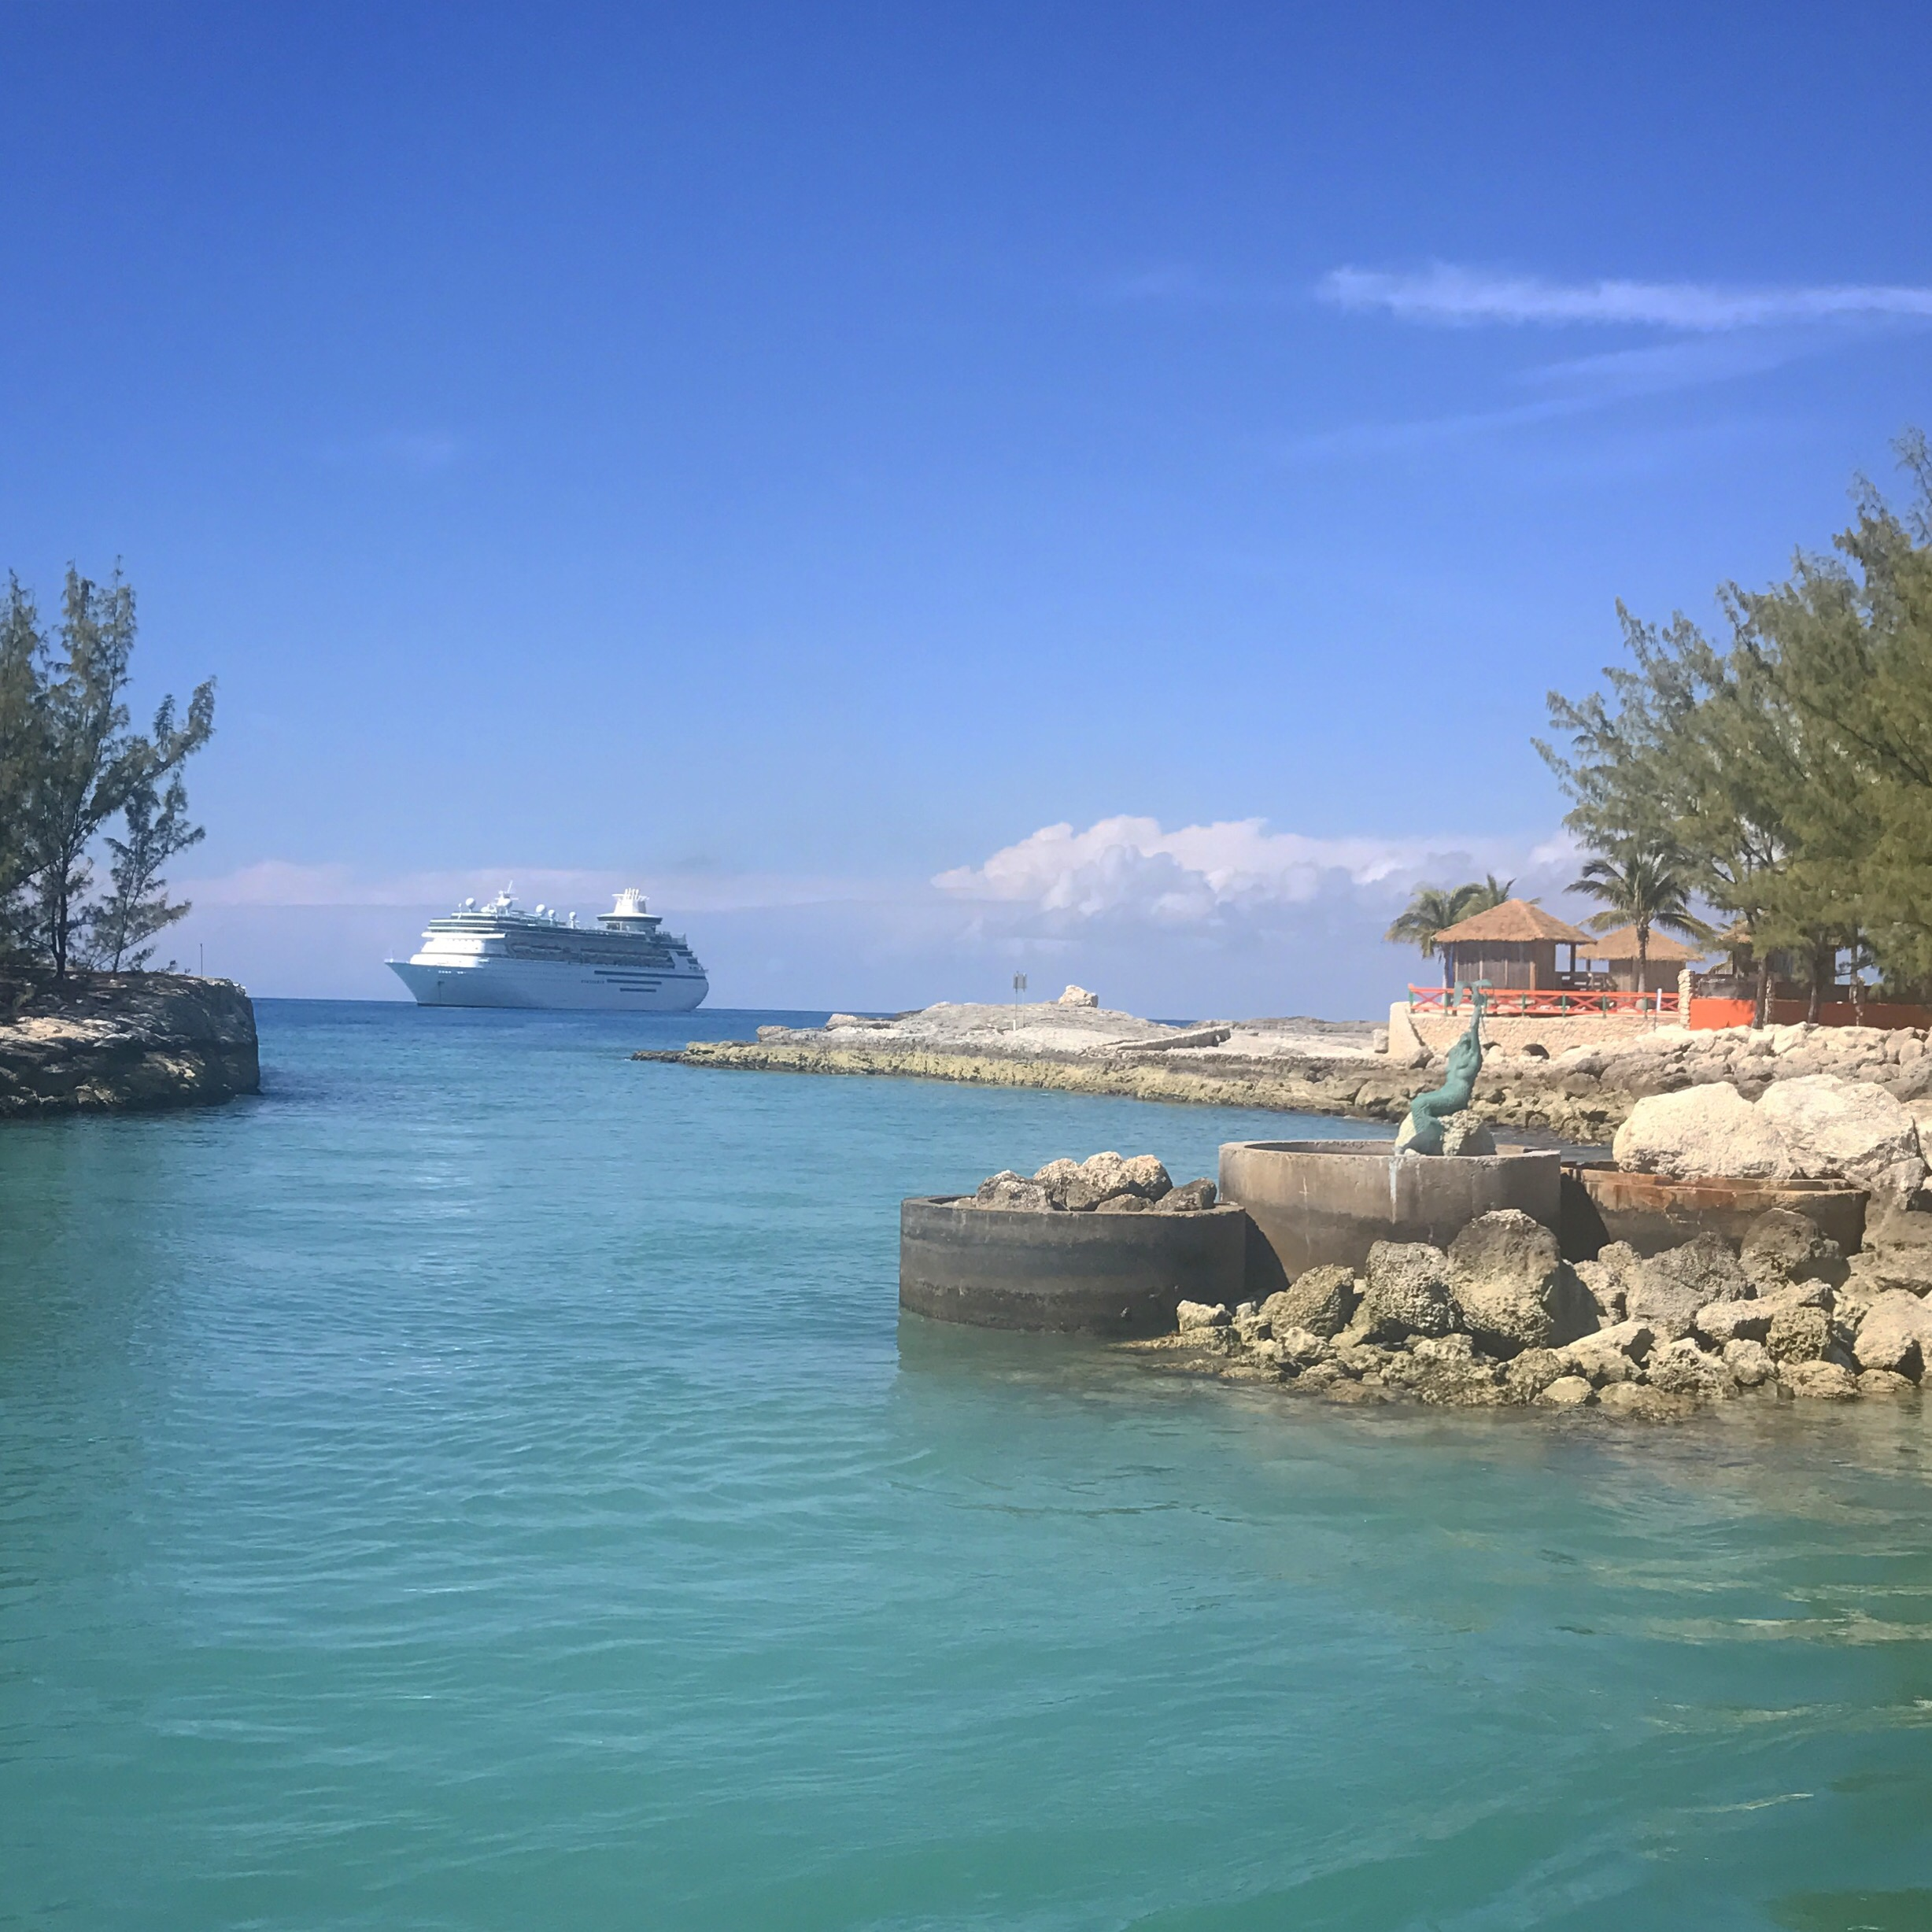 How to Cruise Through the Bahamas for Your Bachelorette Party